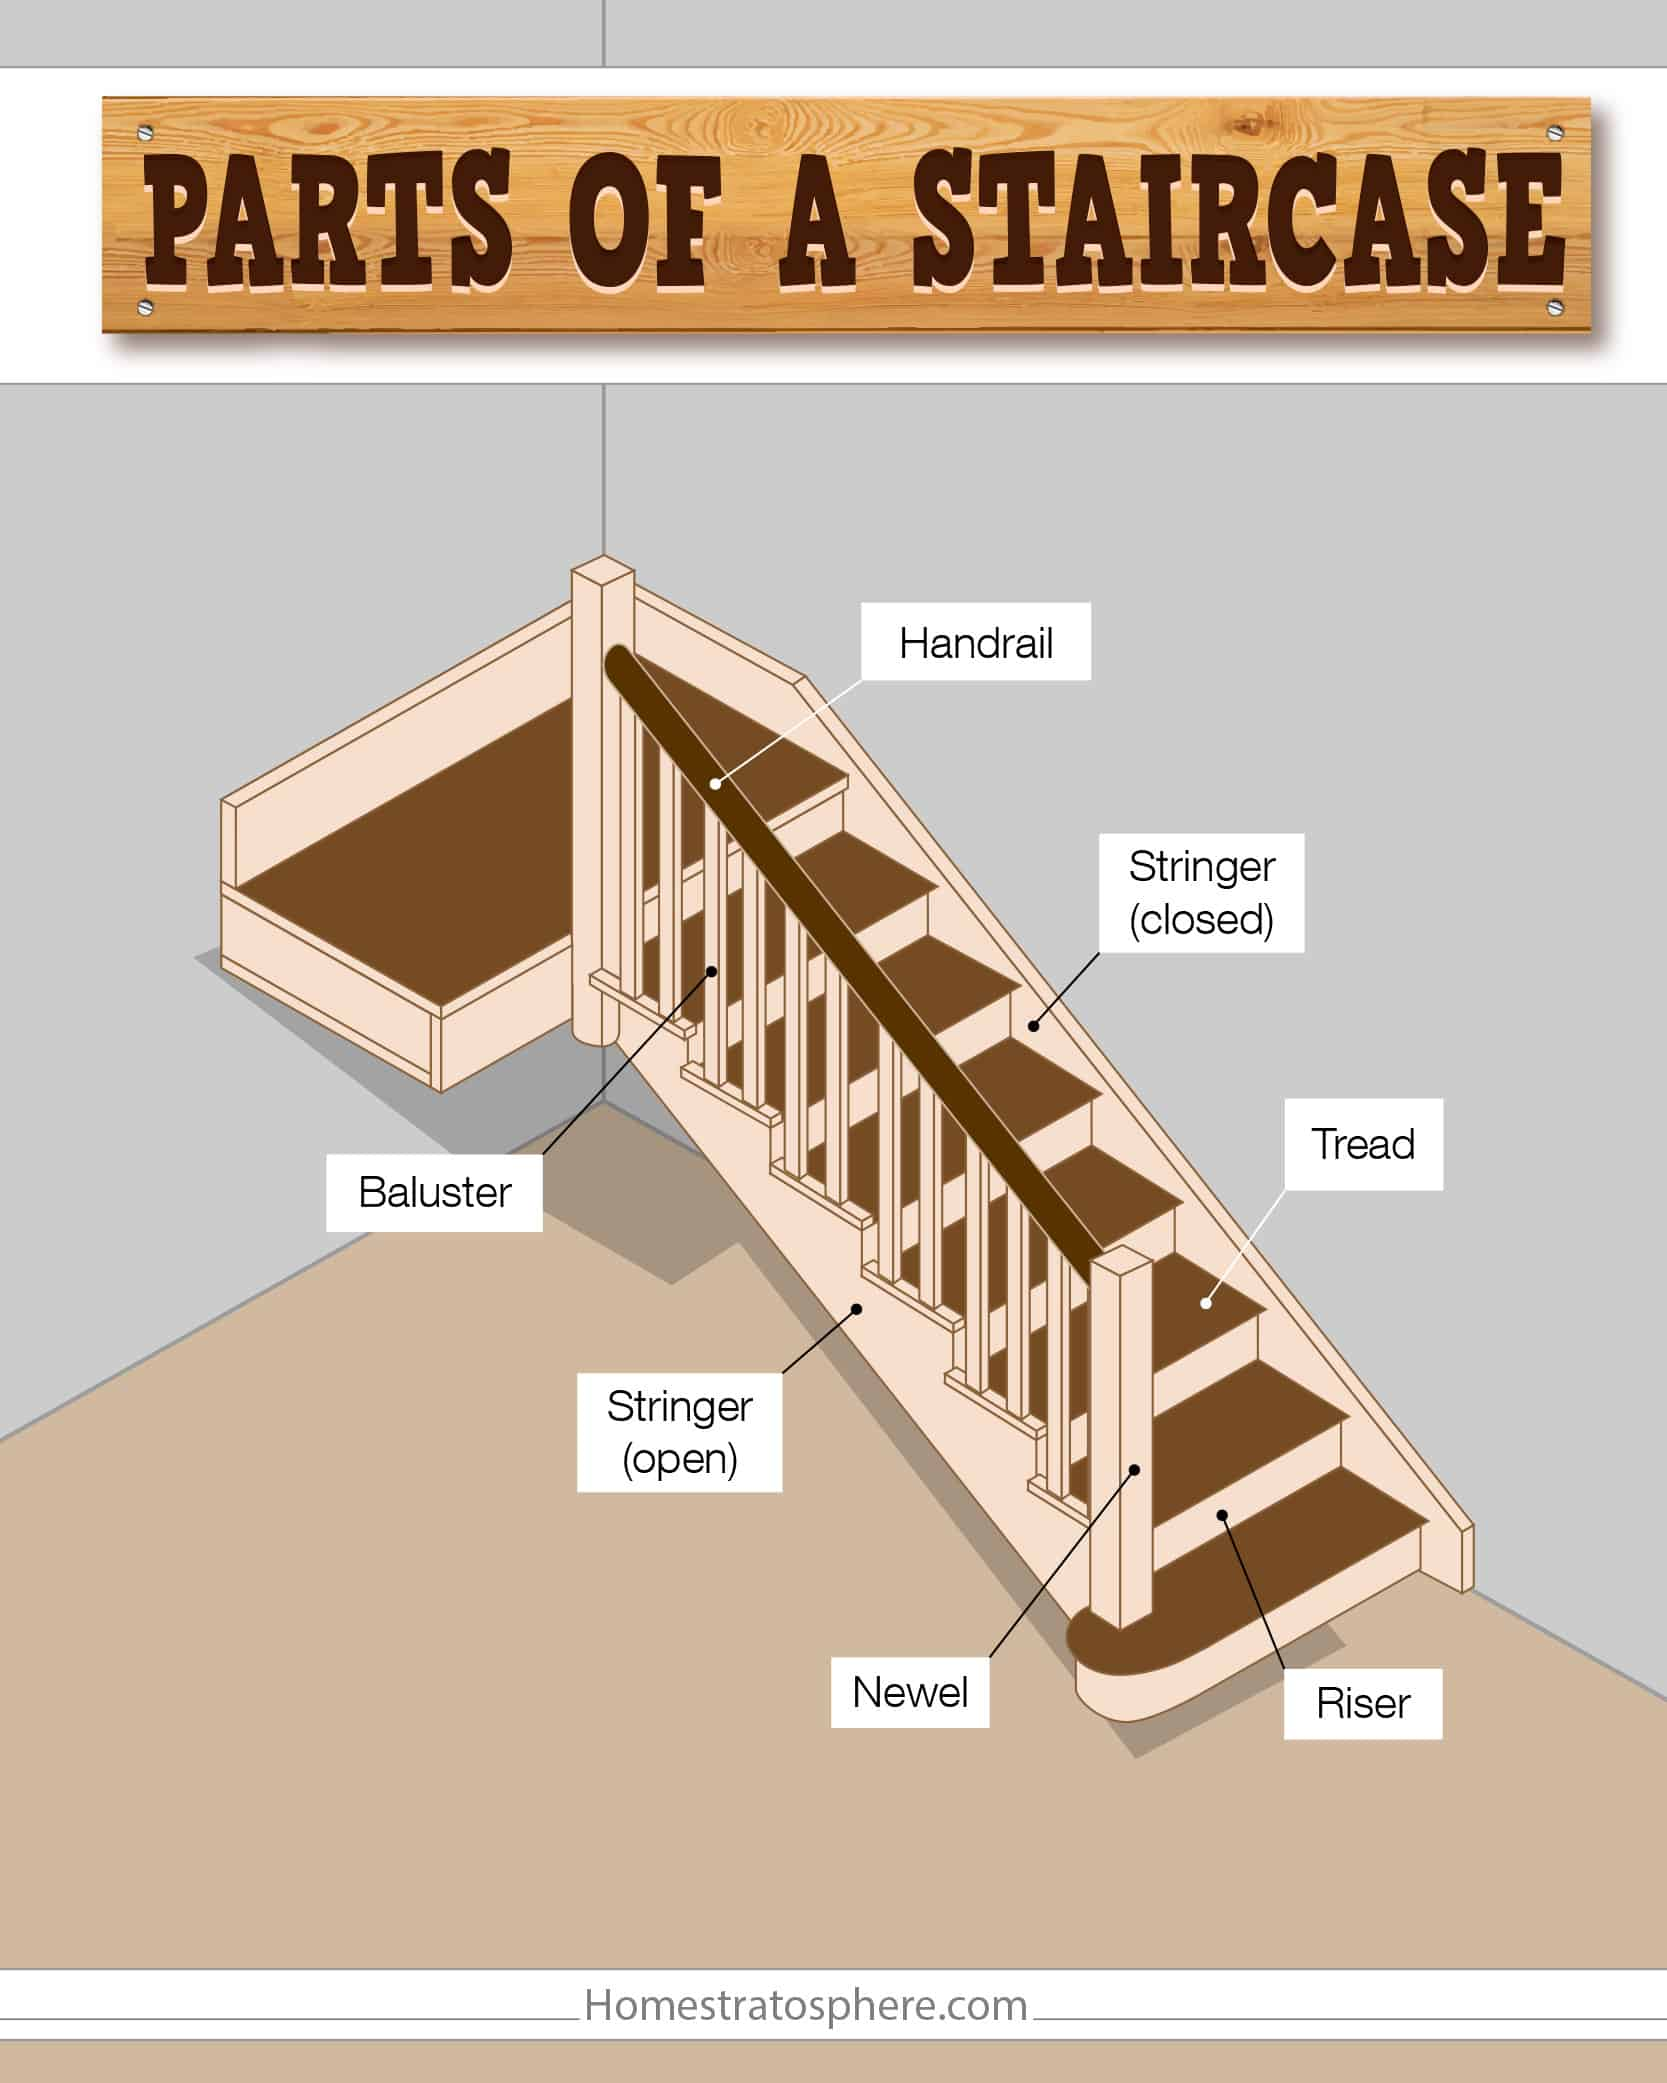 Stair case diagram anything wiring diagrams parts of a staircase illustrated diagram rh homestratosphere com staircase ladder diagram staircase wiring connection diagram asfbconference2016 Image collections